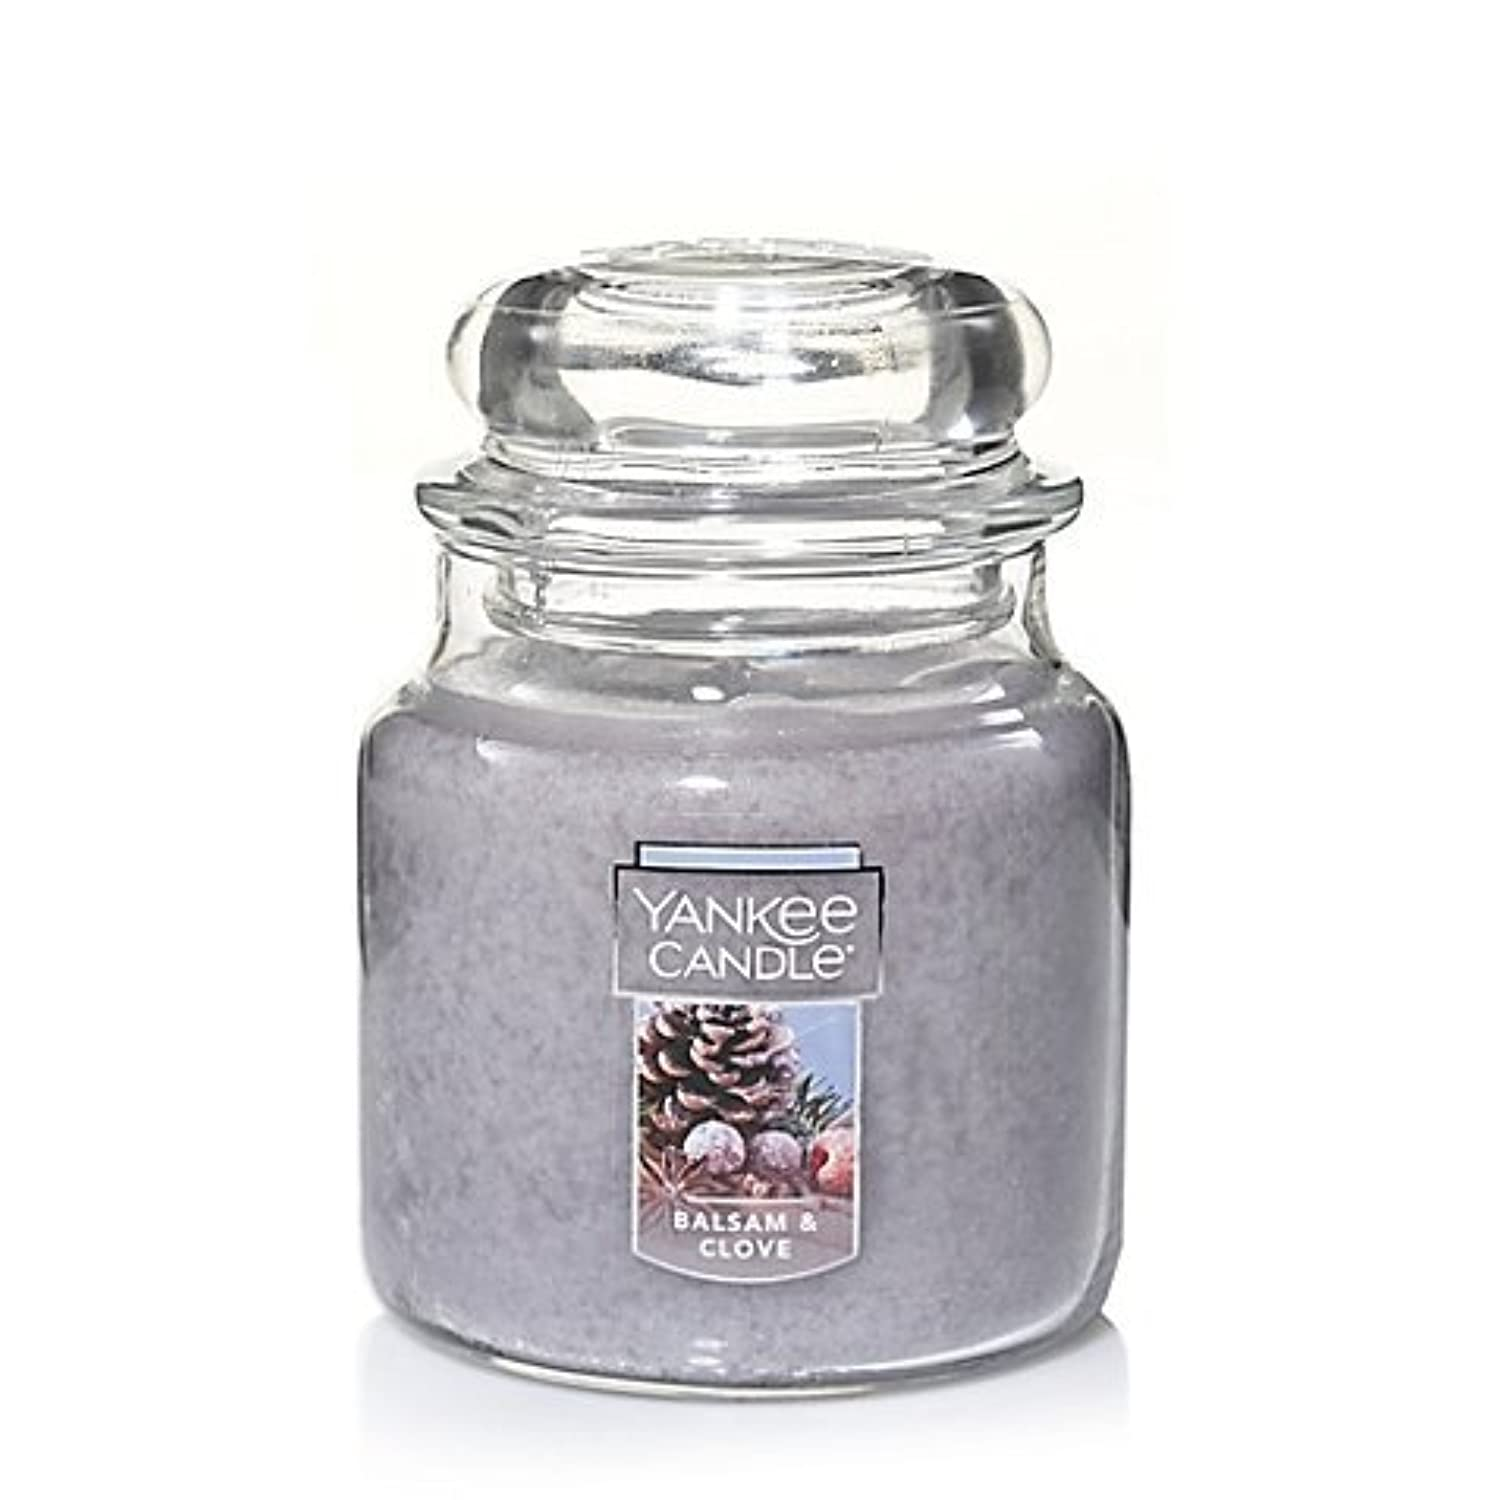 Yankee Candle Balsam &クローブSmall Jar Candle